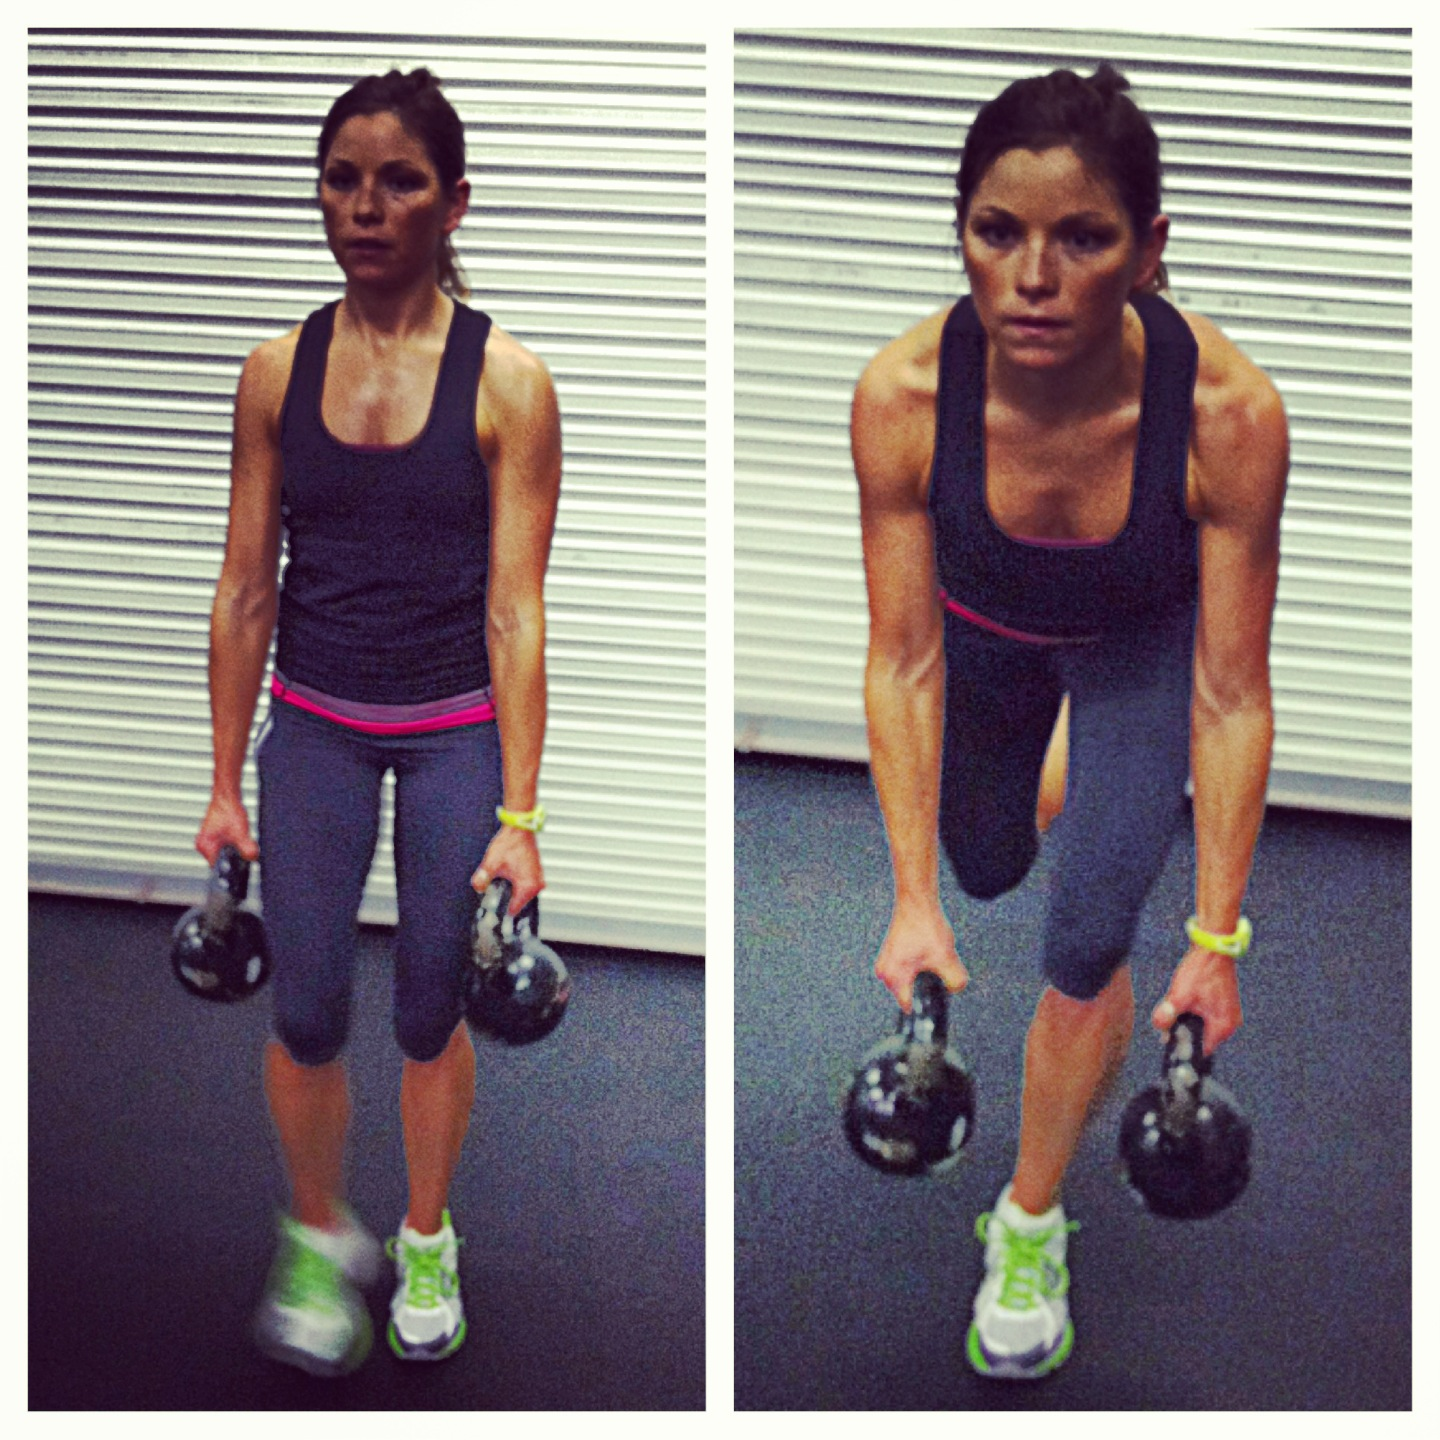 TRi*Tawn: What I Love: Single Leg RDLs & Overhead Squats with a Band